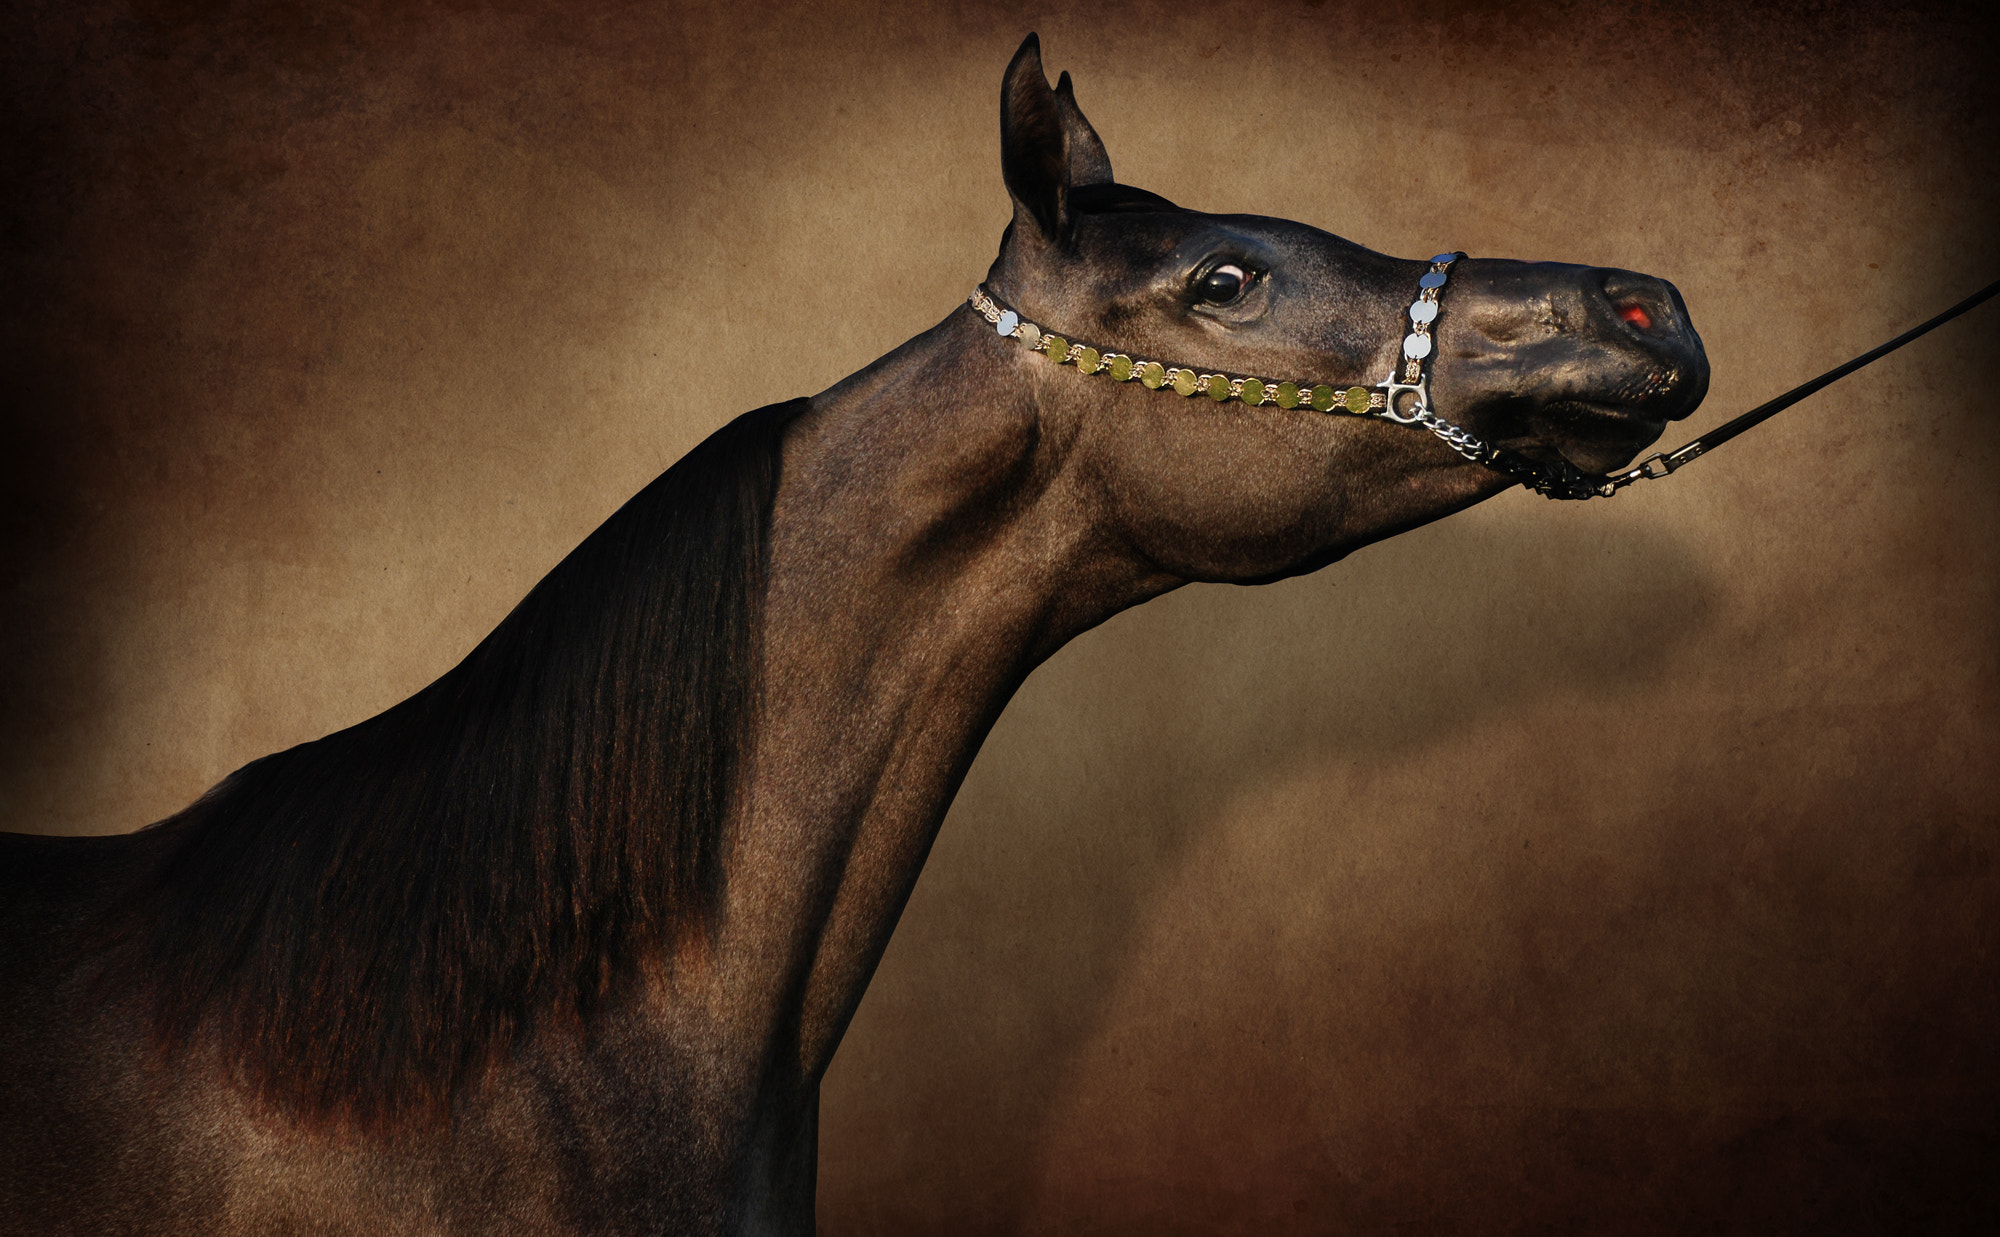 Photograph ARABIC HORSE by Mohamad Hommadi on 500px